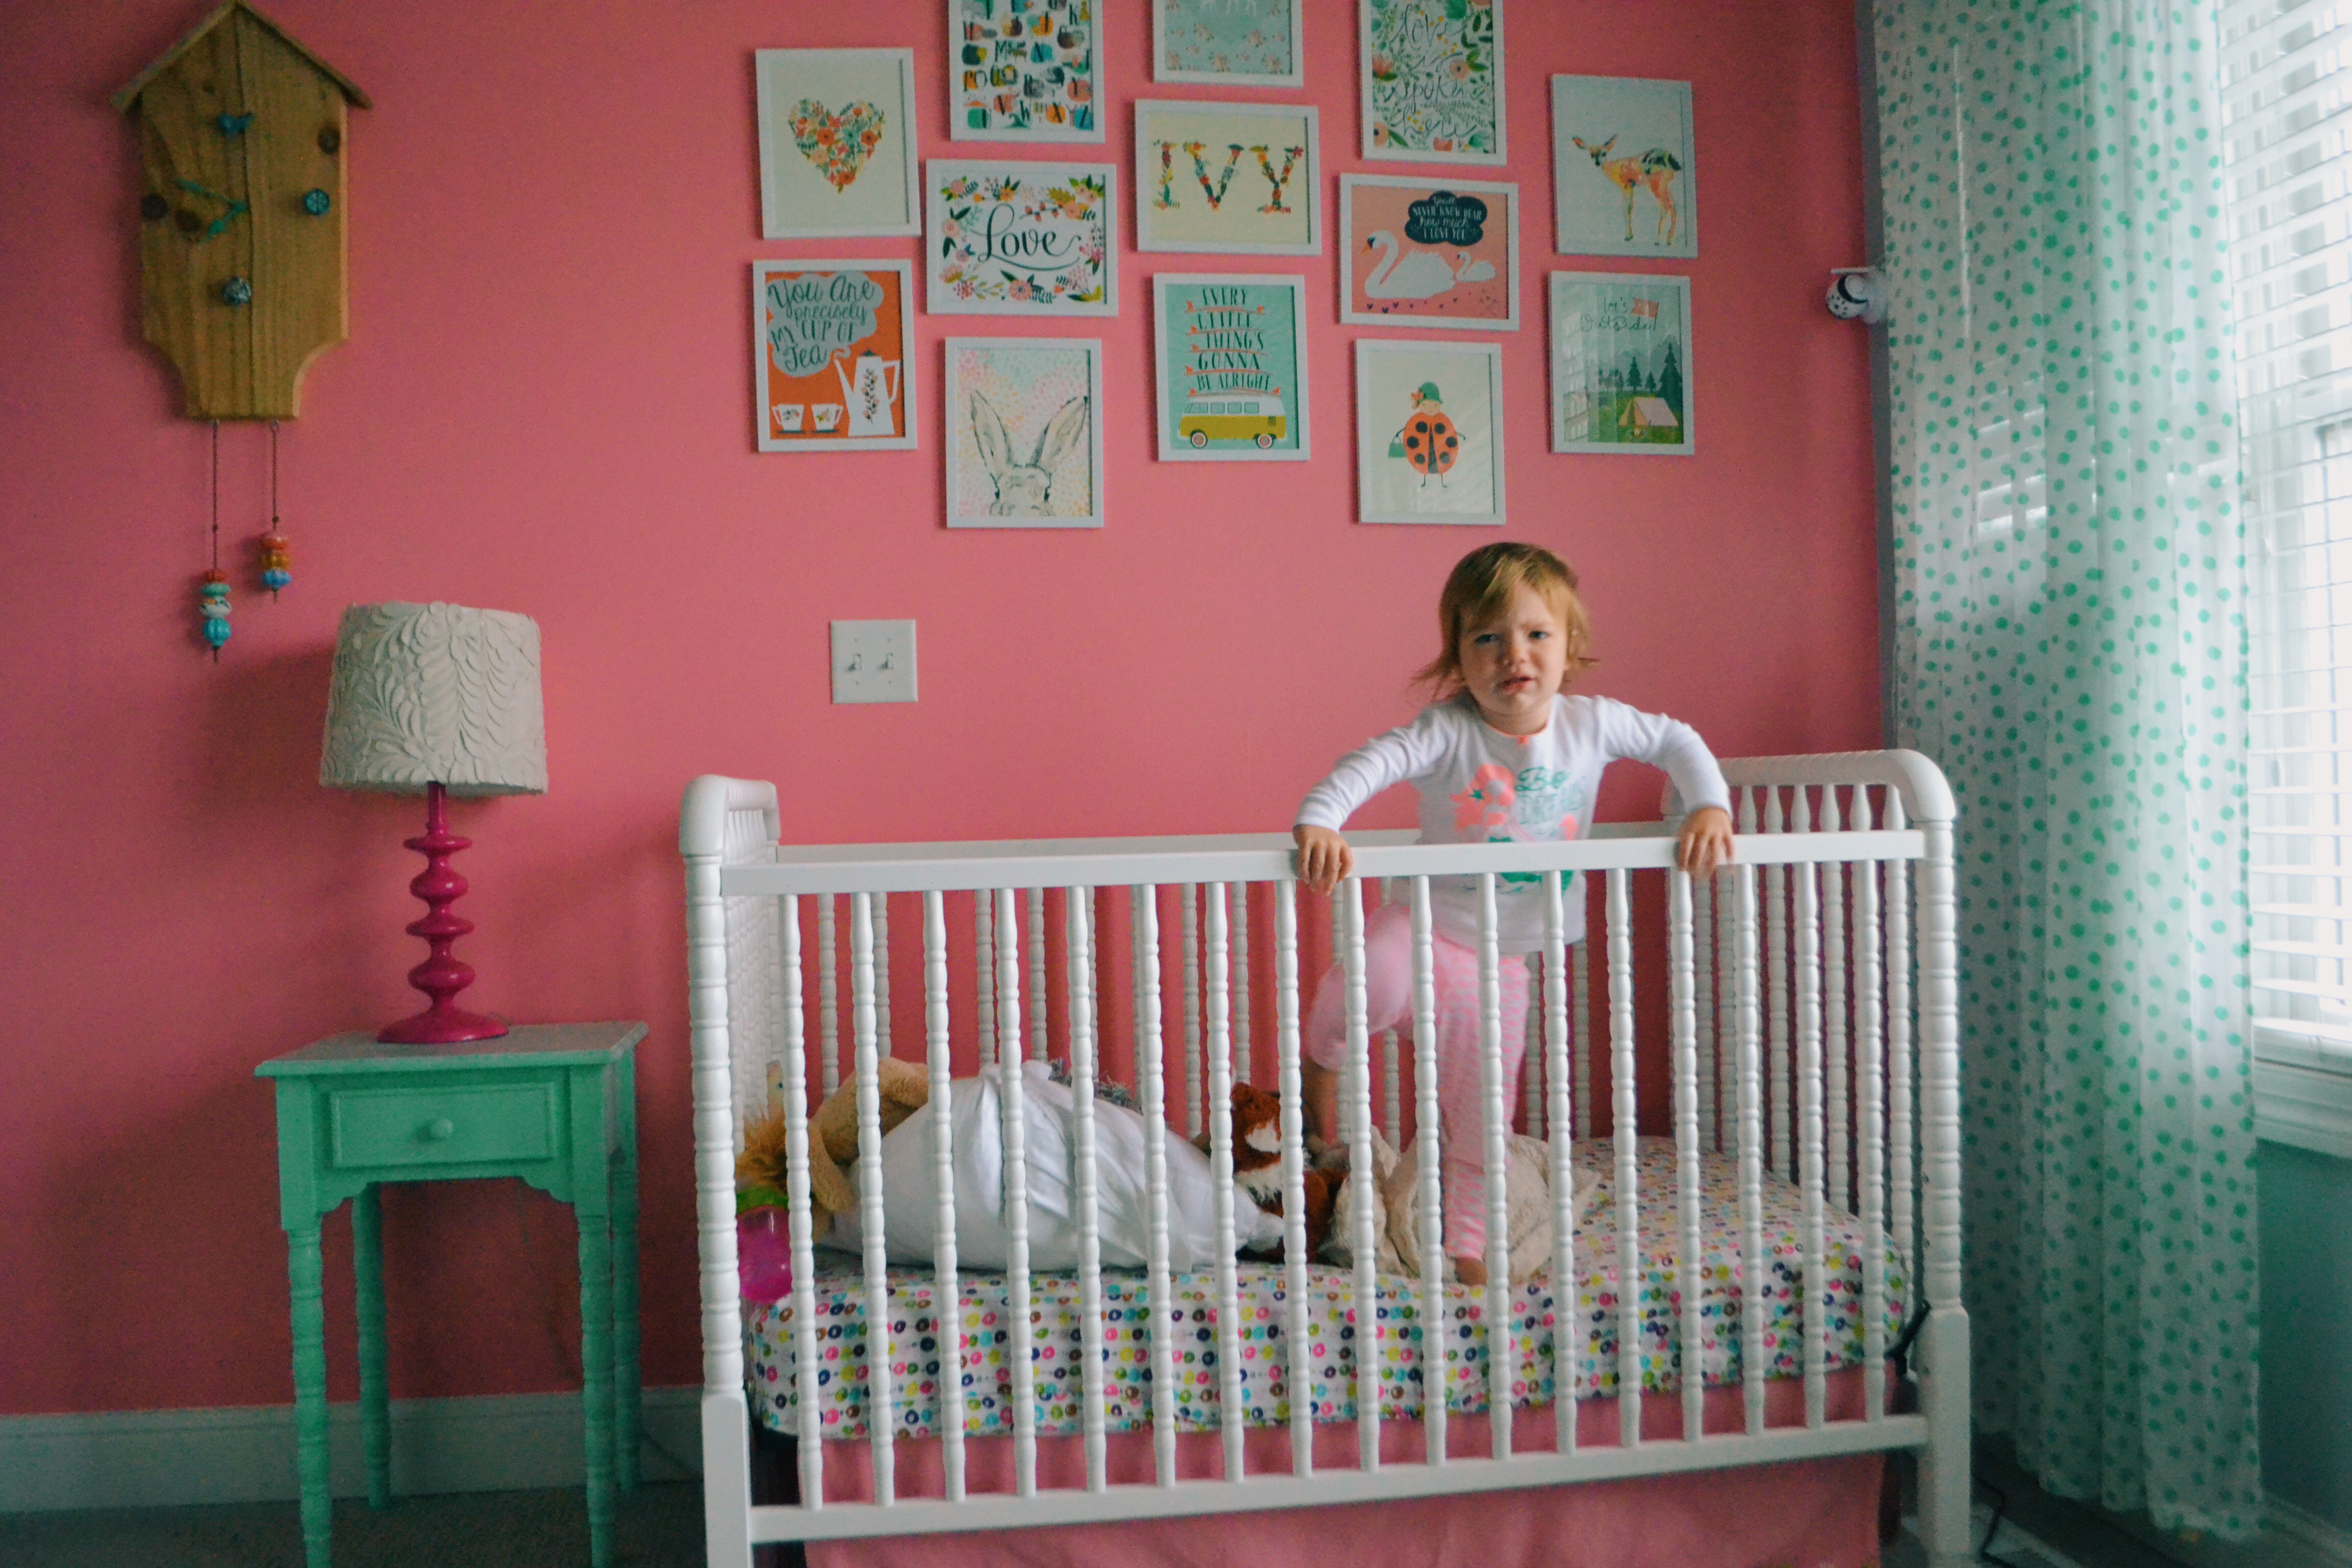 Baby bed for 2 year old - September 22 2015